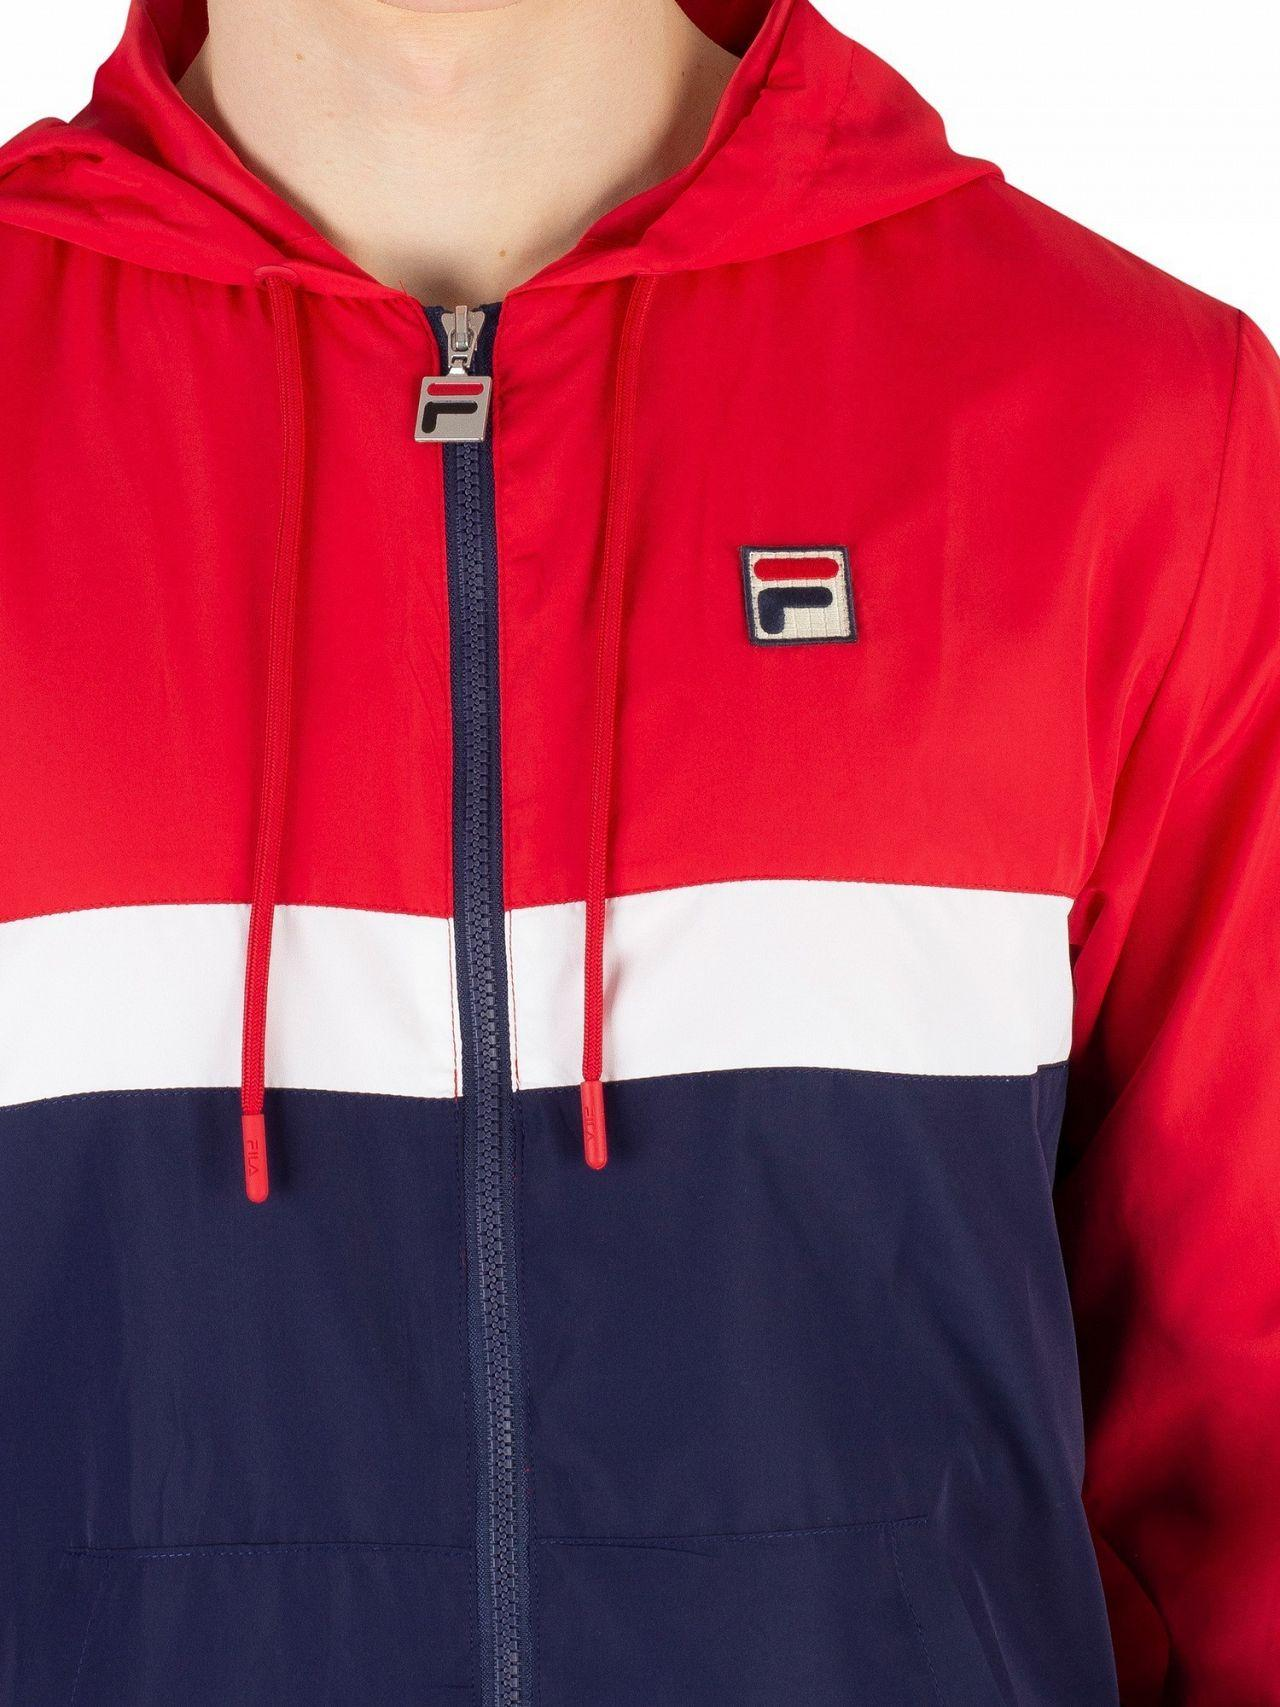 366529c8a Men's Chinese Red/peacoat/white Ambrose Color Block Jacket